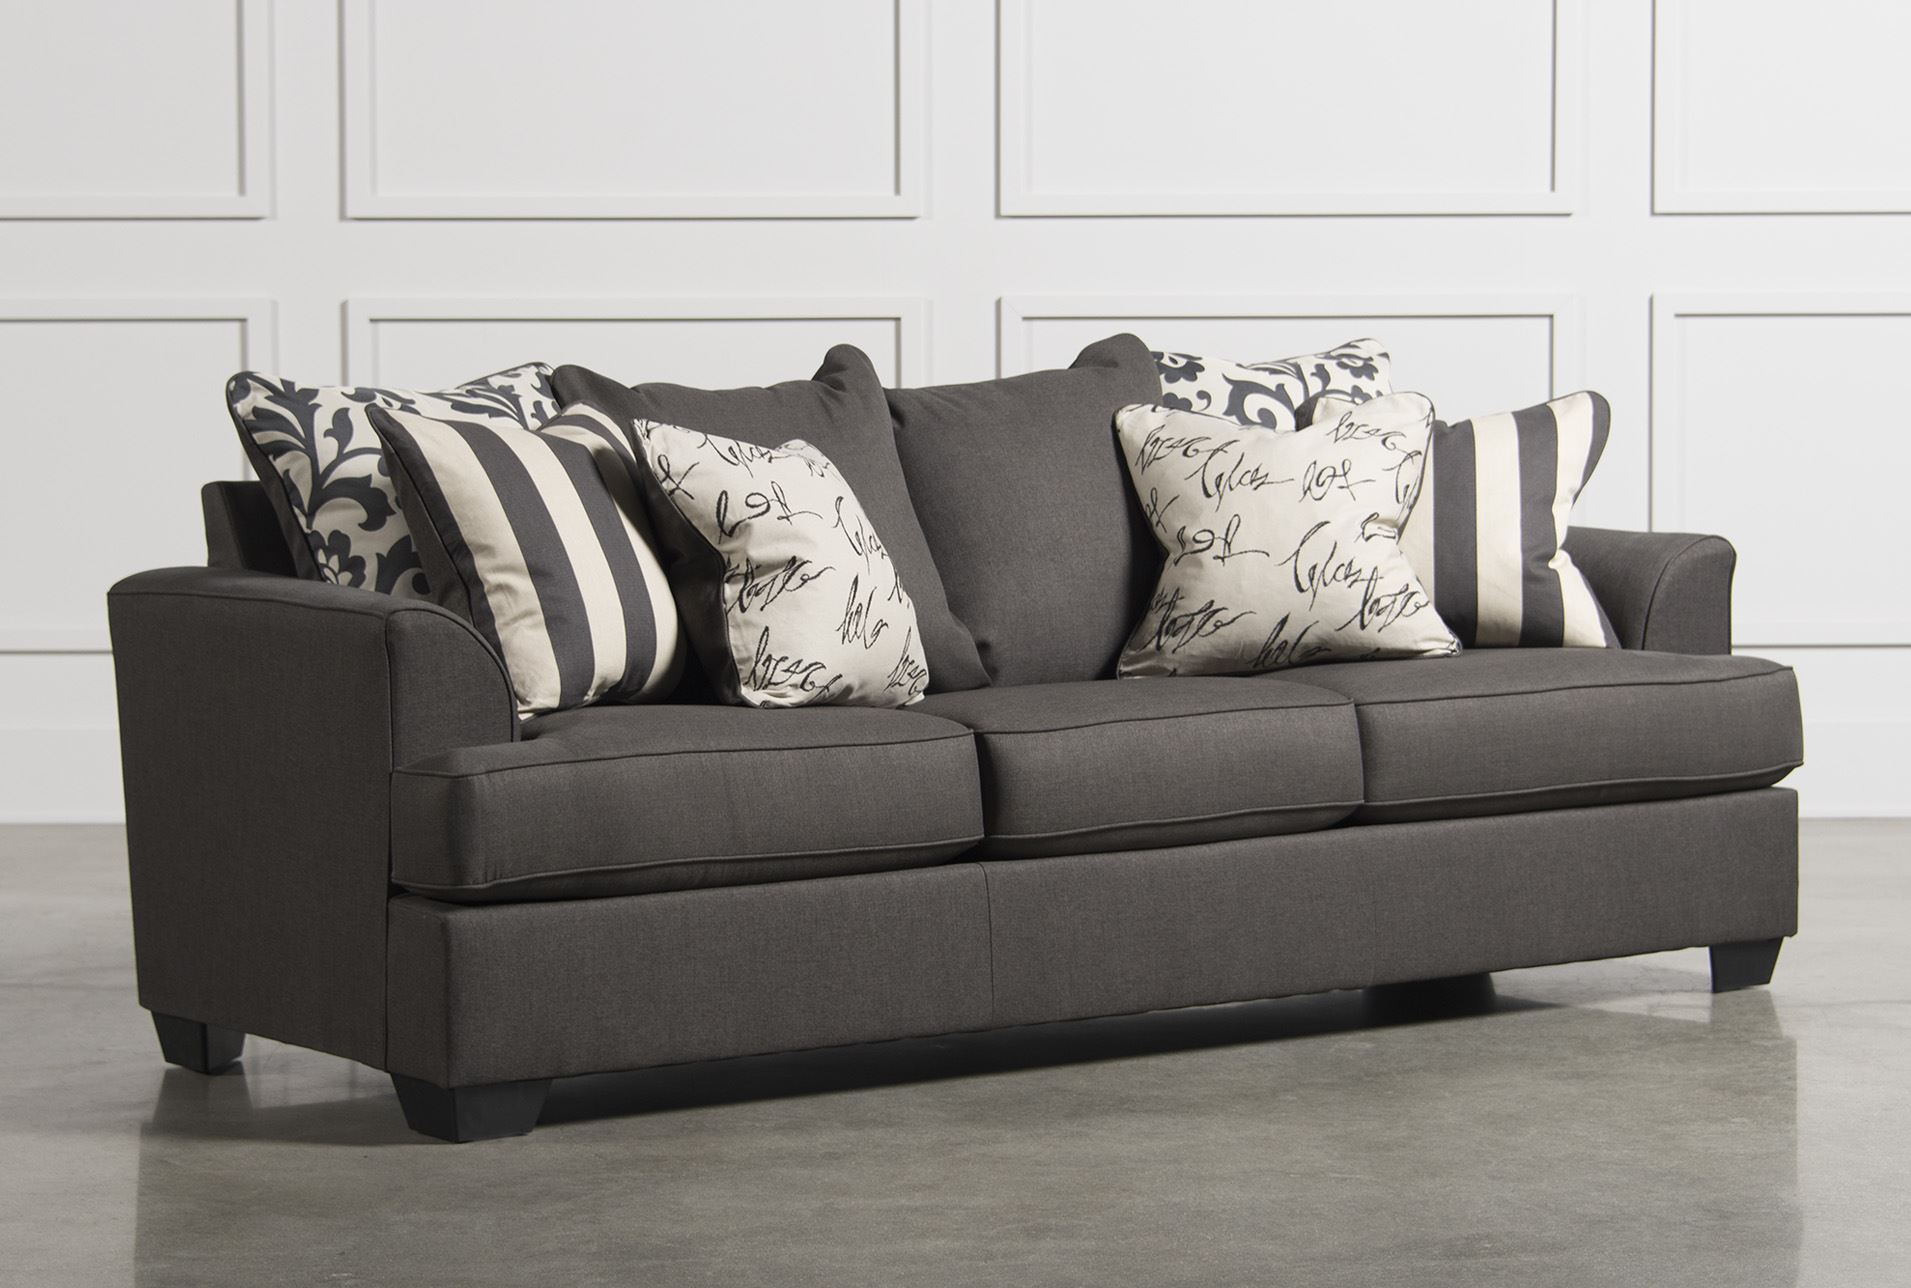 Fresh Charcoal Sofa 52 For Your Modern Sofa Inspiration with Charcoal Sofa